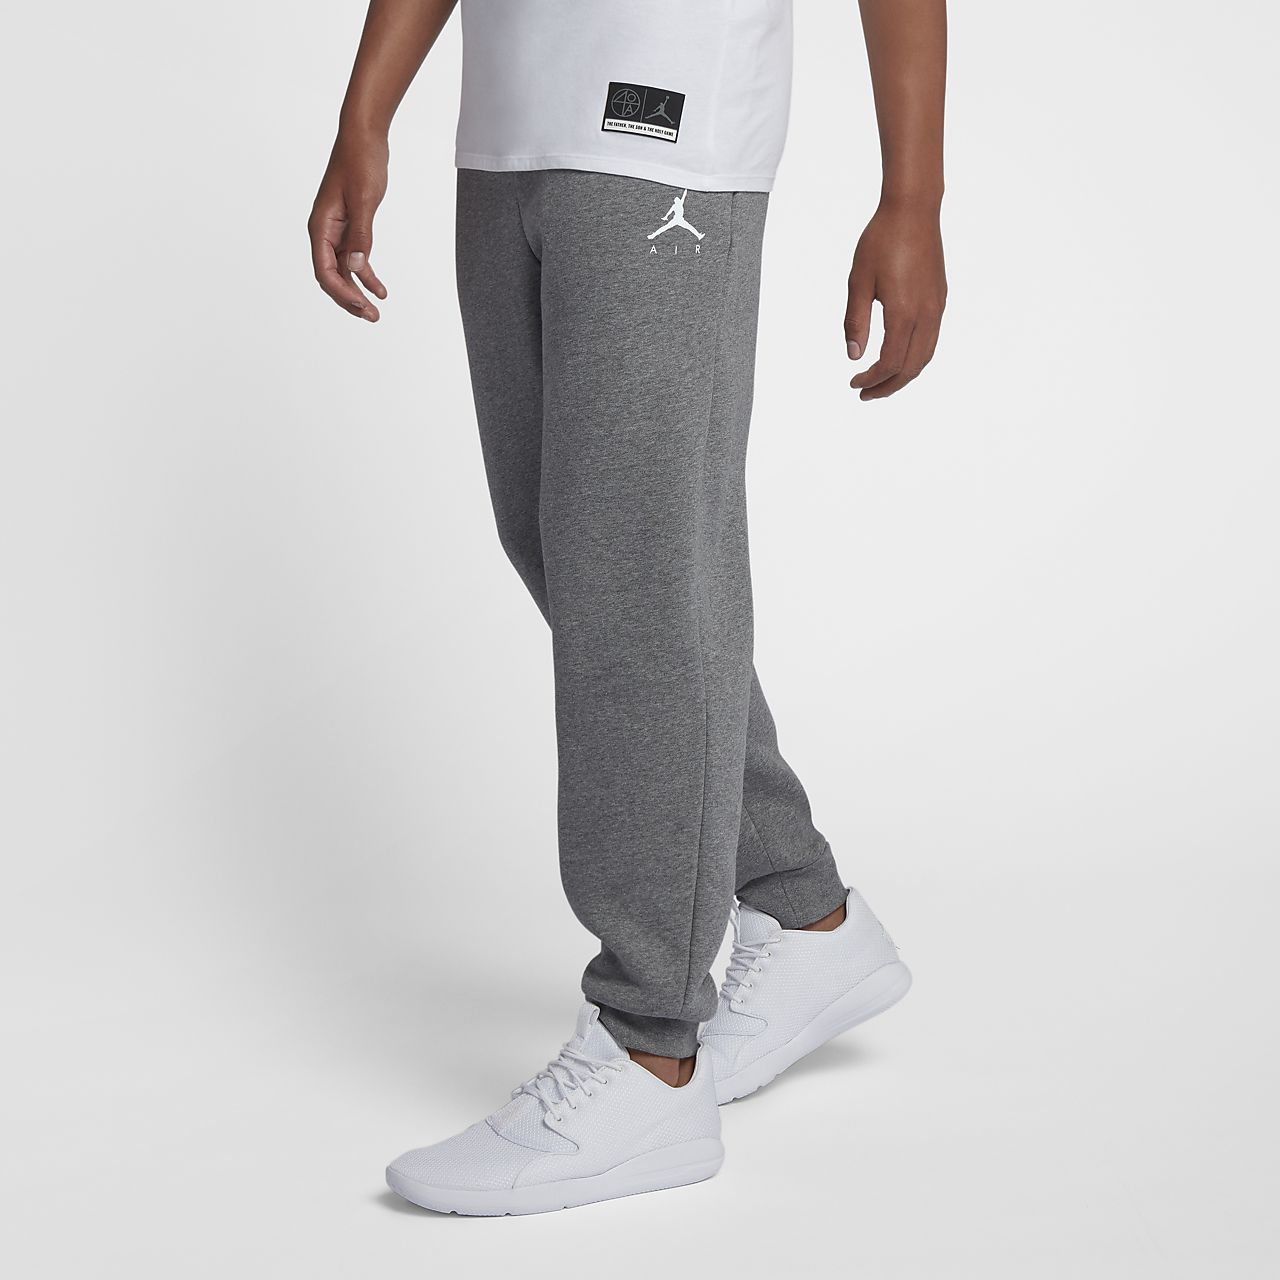 1205336a06bb83 Jordan Jumpman Air Men s Fleece Pants. Nike.com